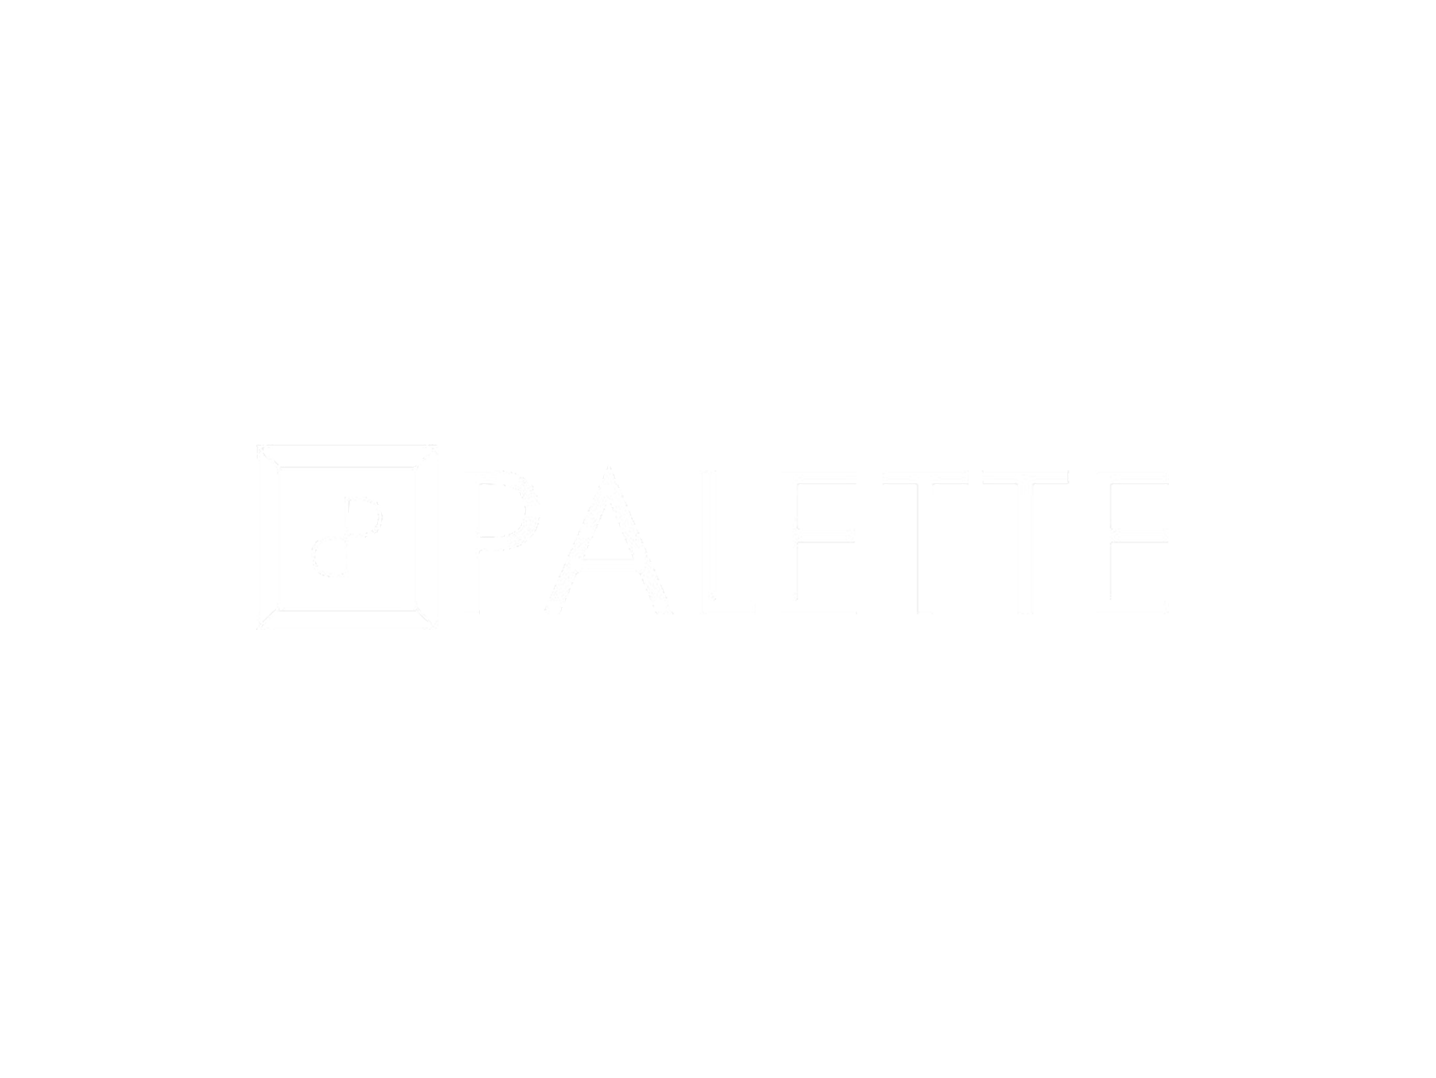 from Palette